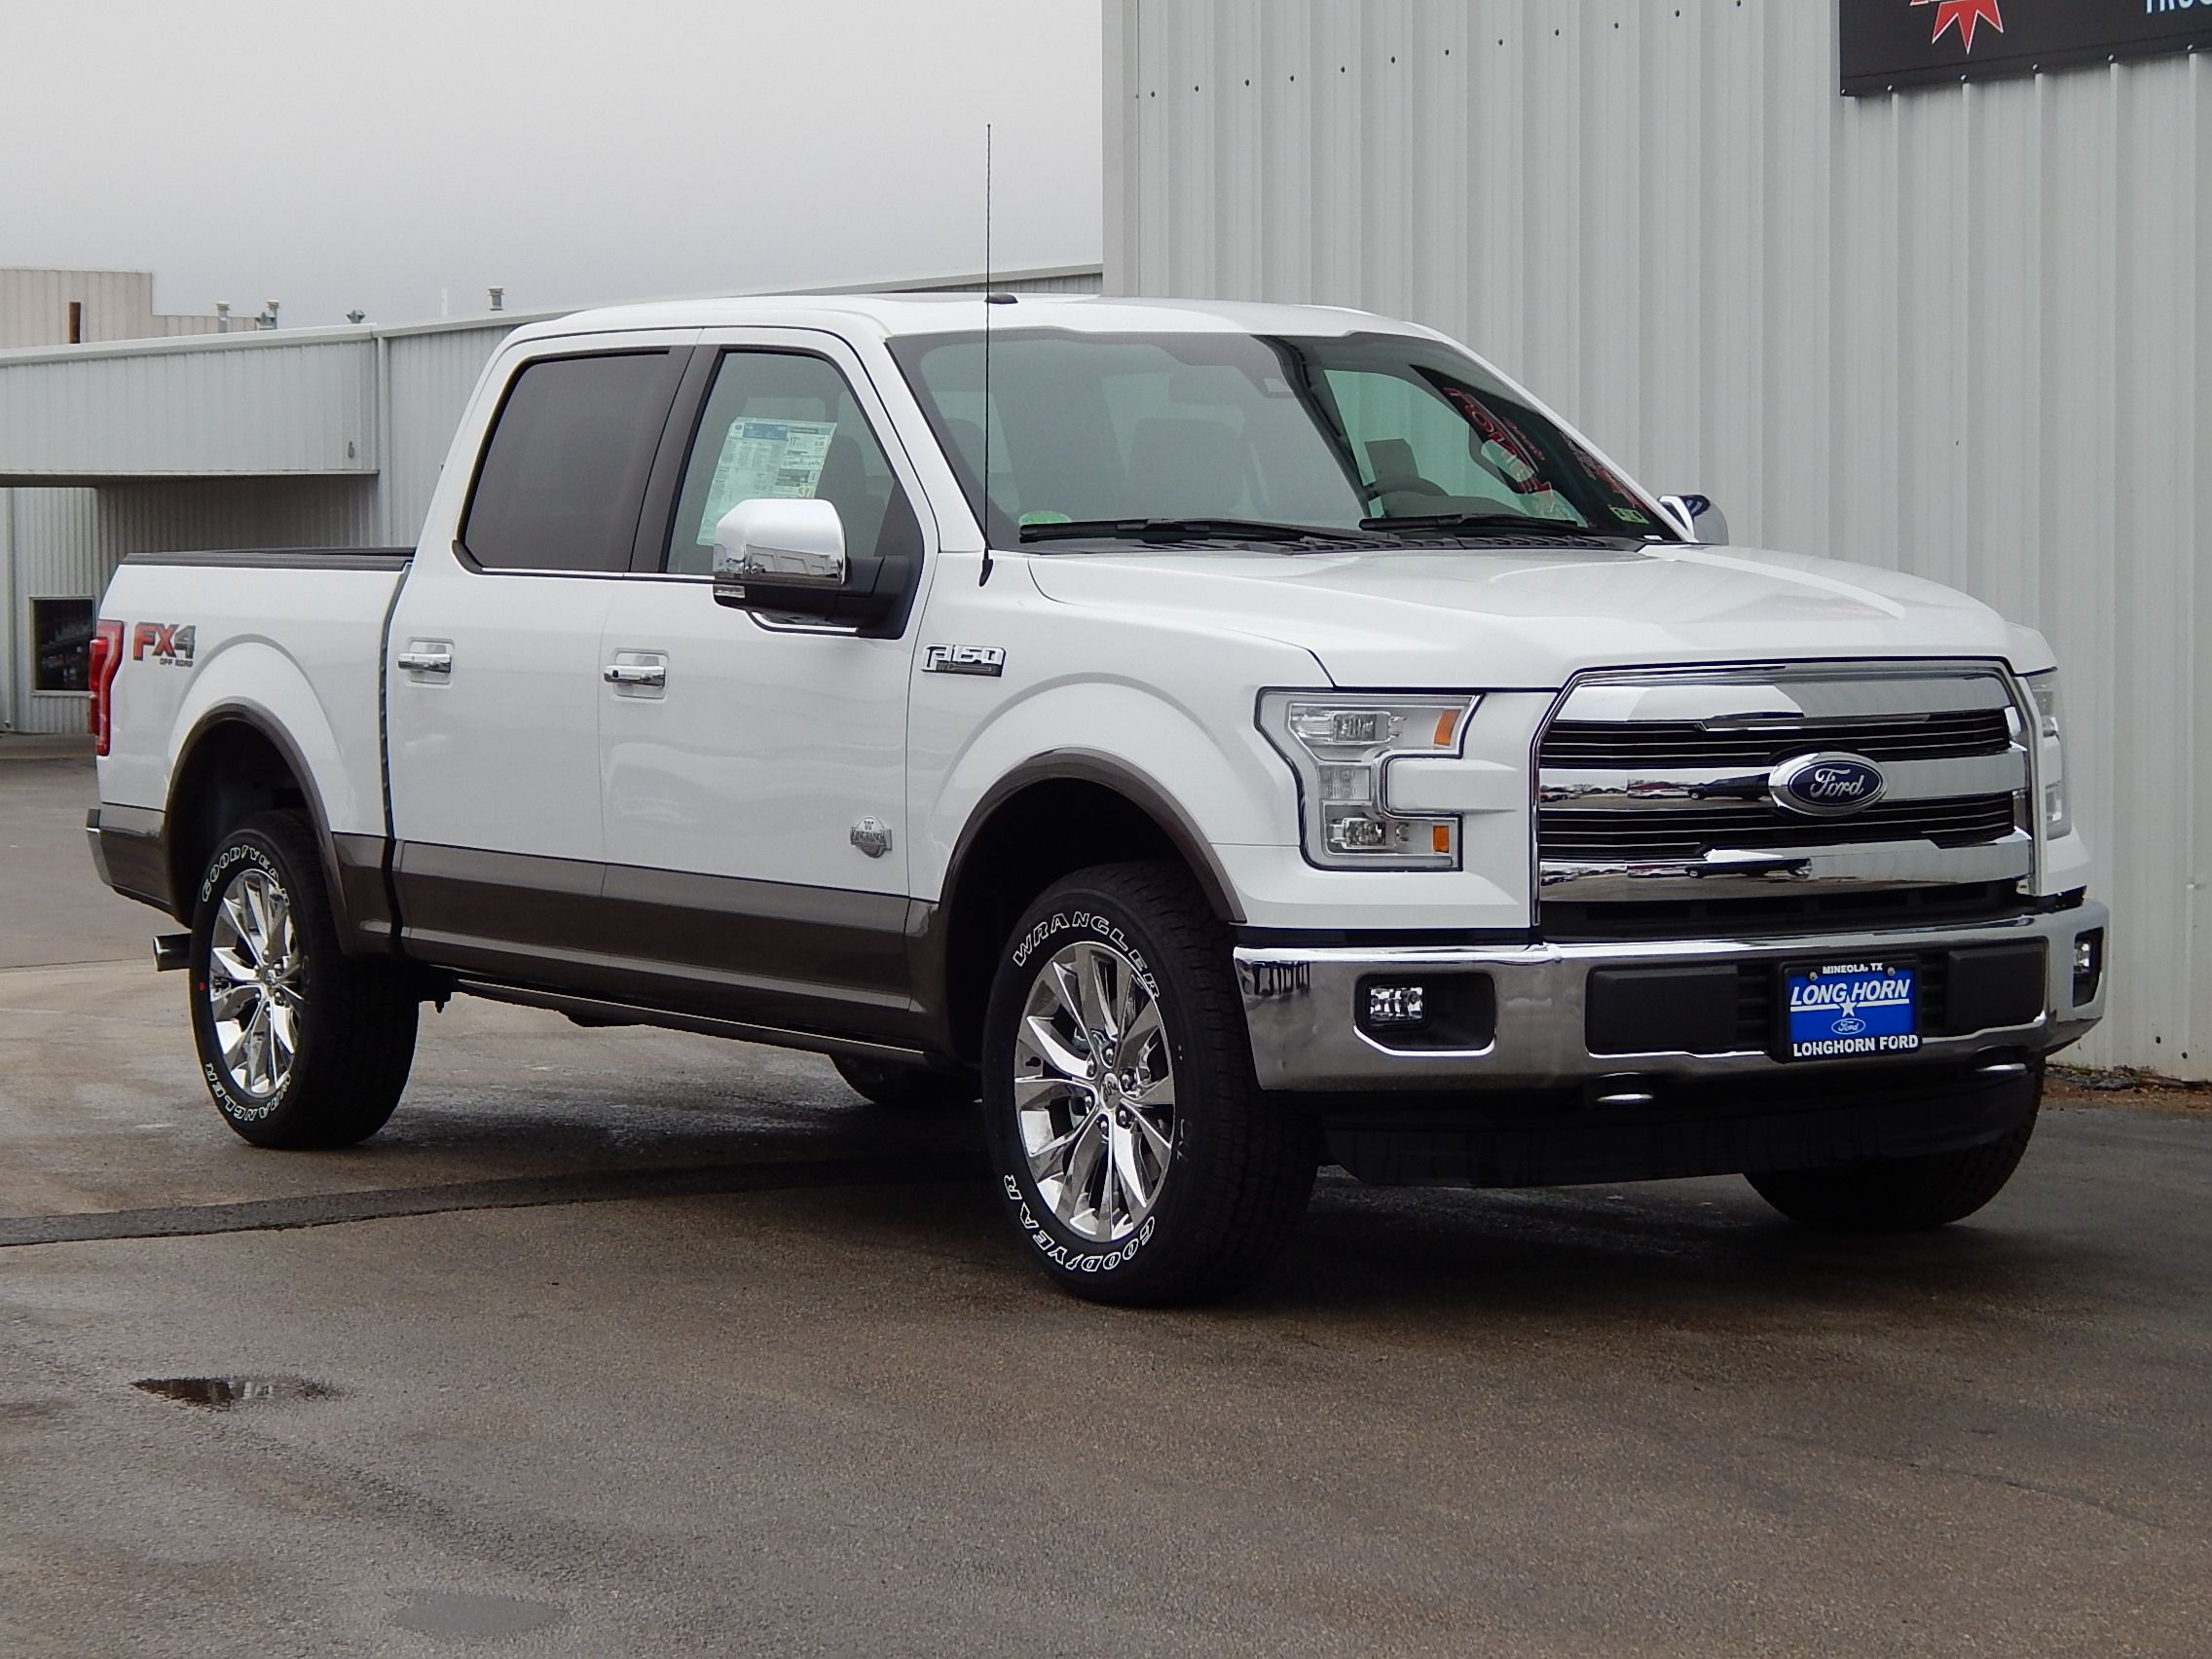 2015 ford f150 king ranch 4x4 the all new 2015 ford f150 has arrived at